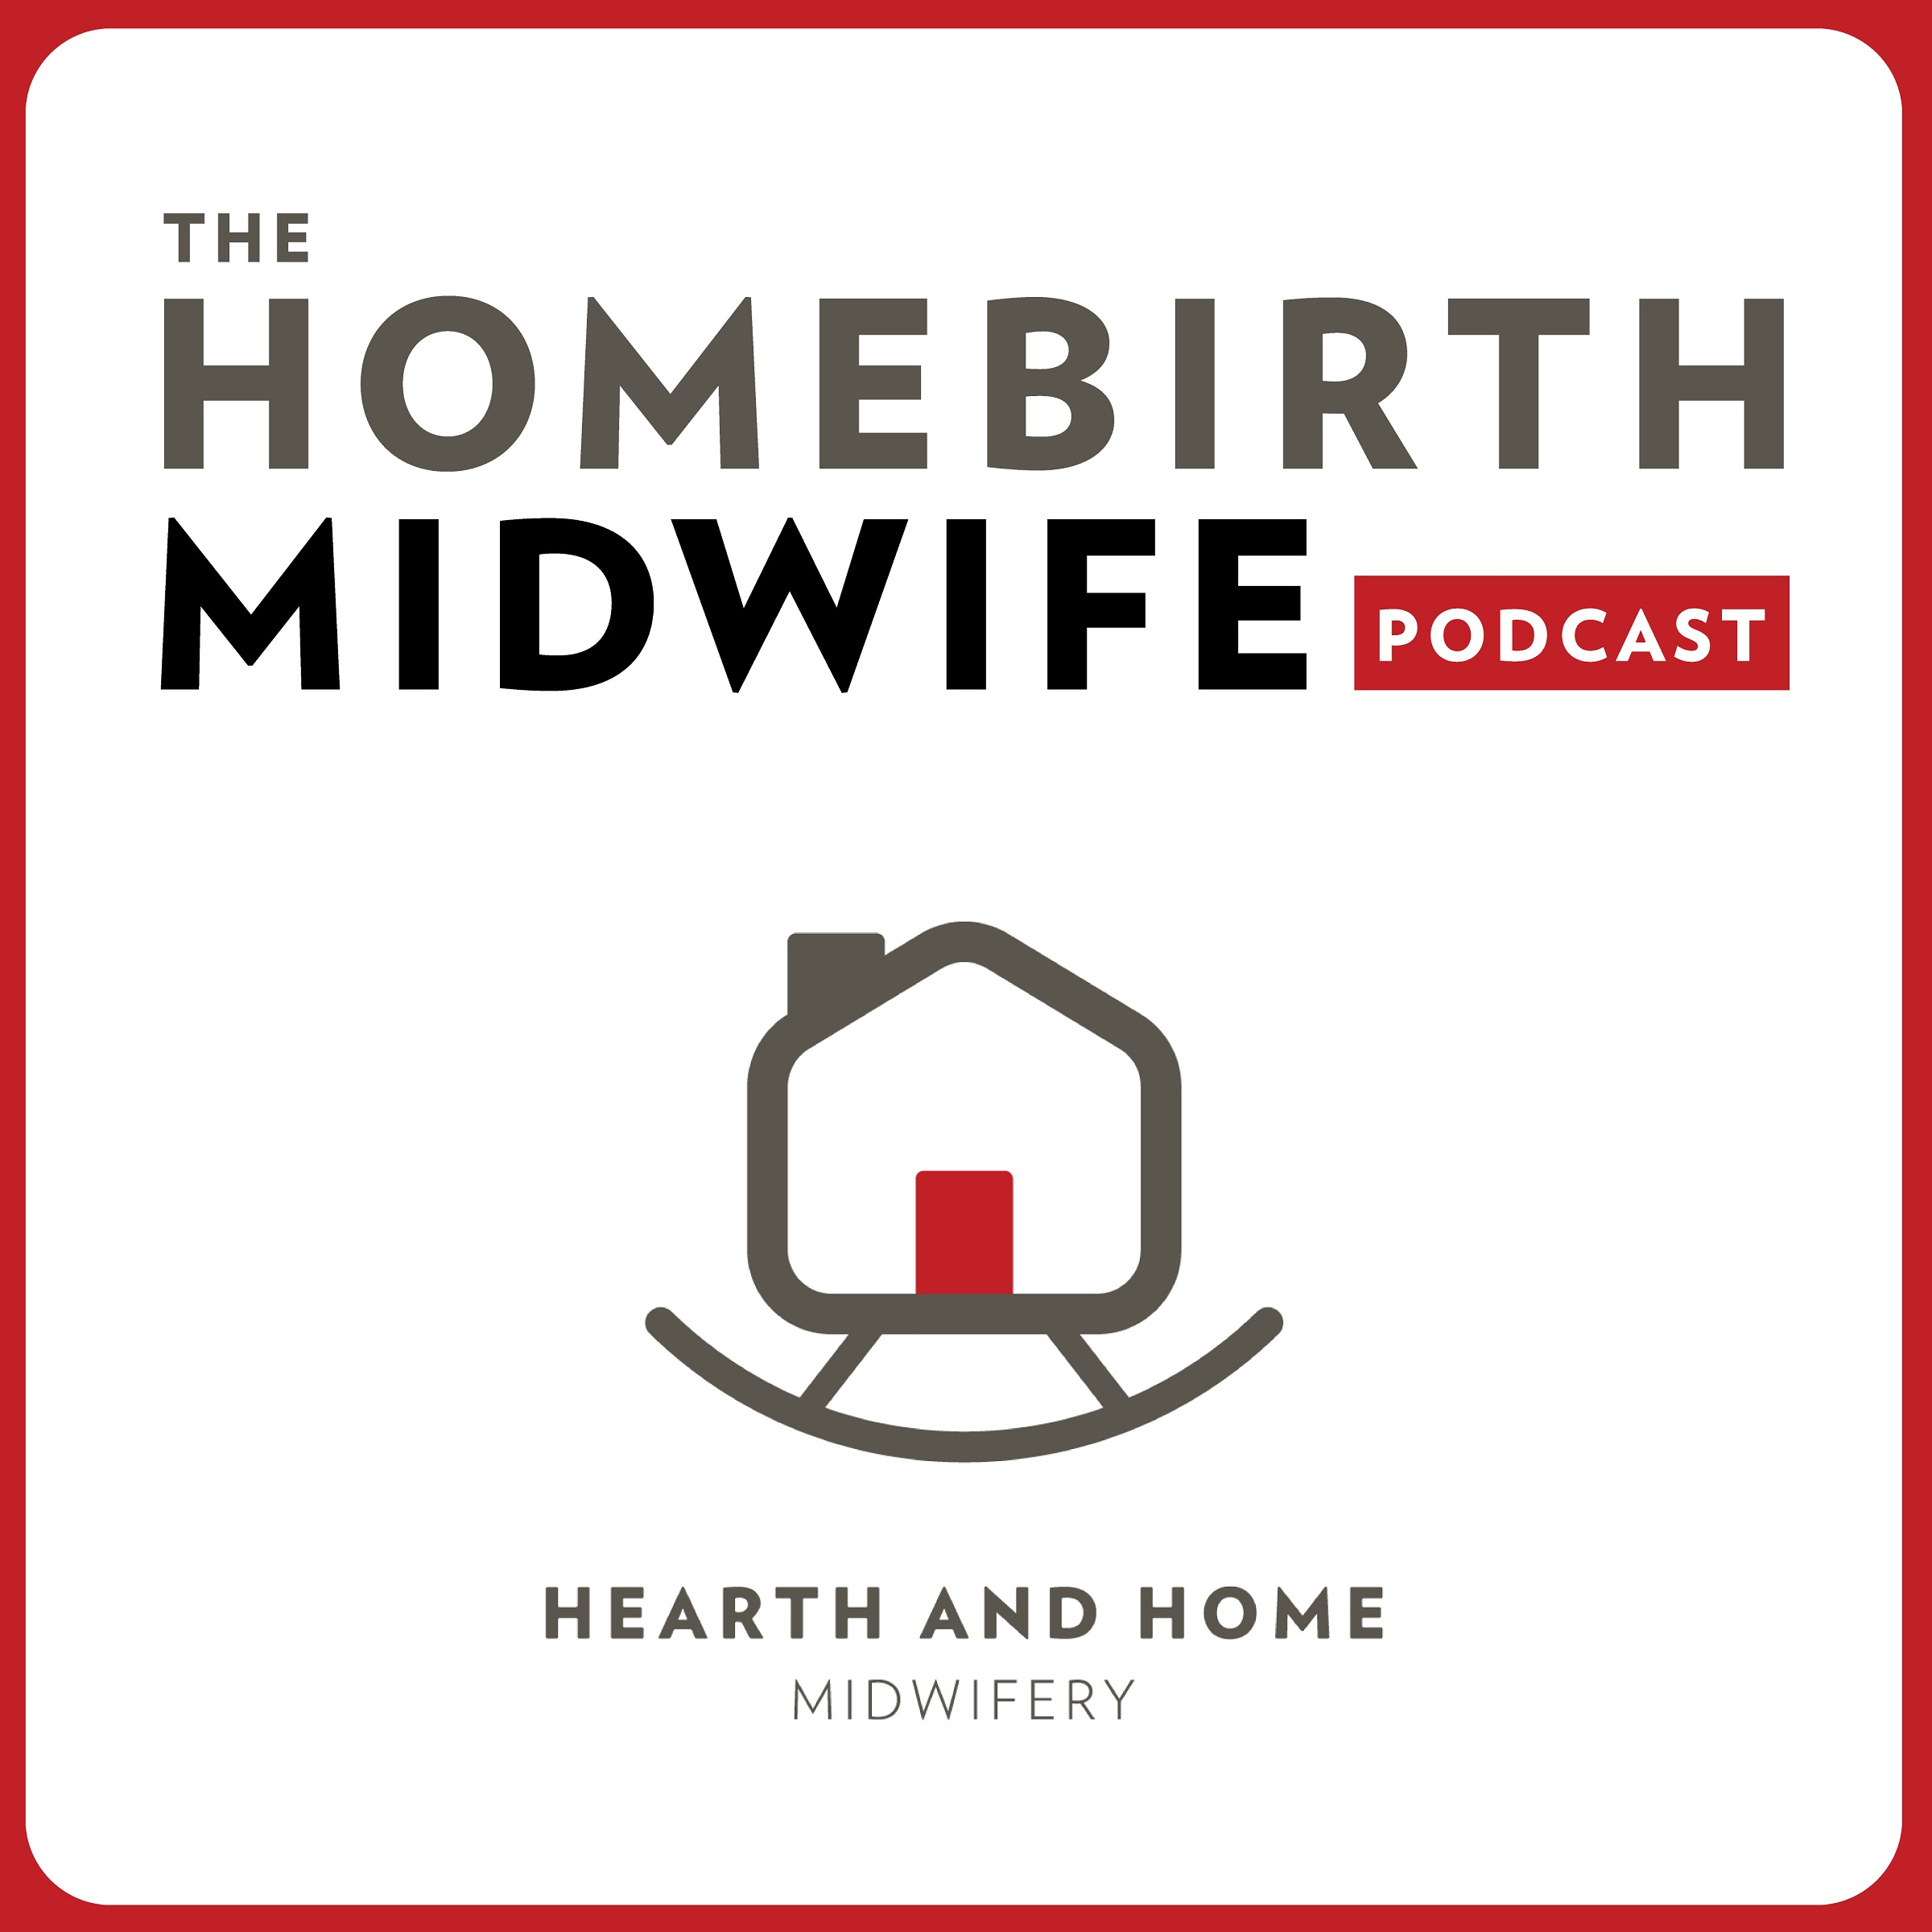 The Homebirth Midwife Podcast show art